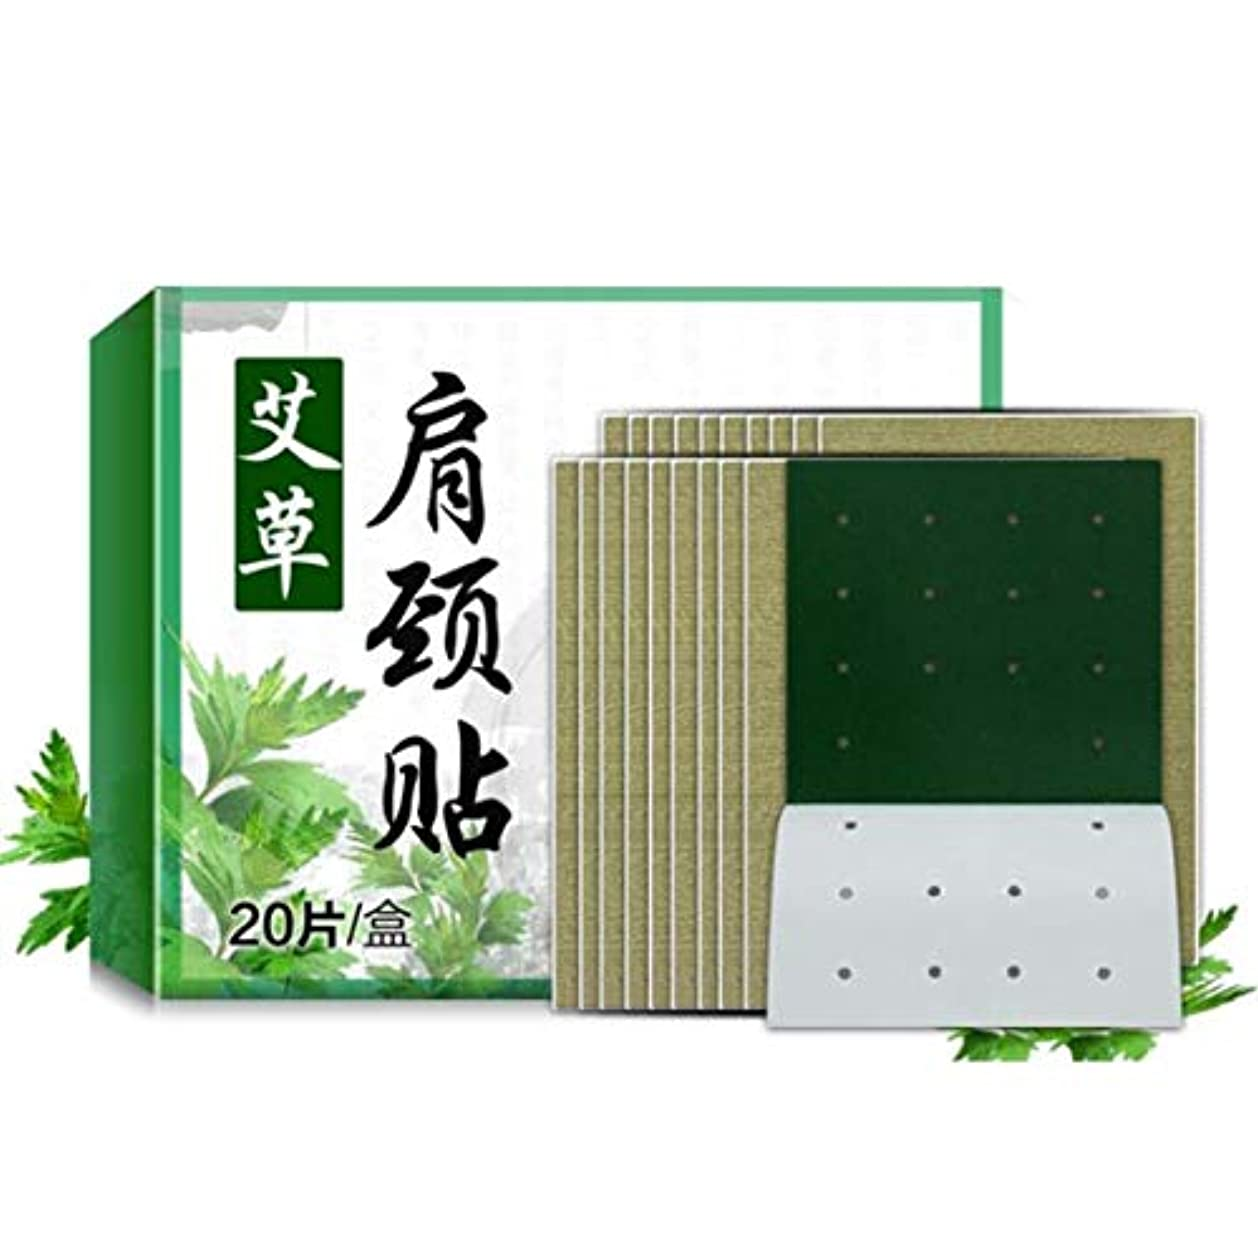 夏マルコポーロintercorey Hot and cold pad 20PCS/SET Wormwood Extract Health Care Detox Moxibustion Relax Patch Waist Neck Muscular...